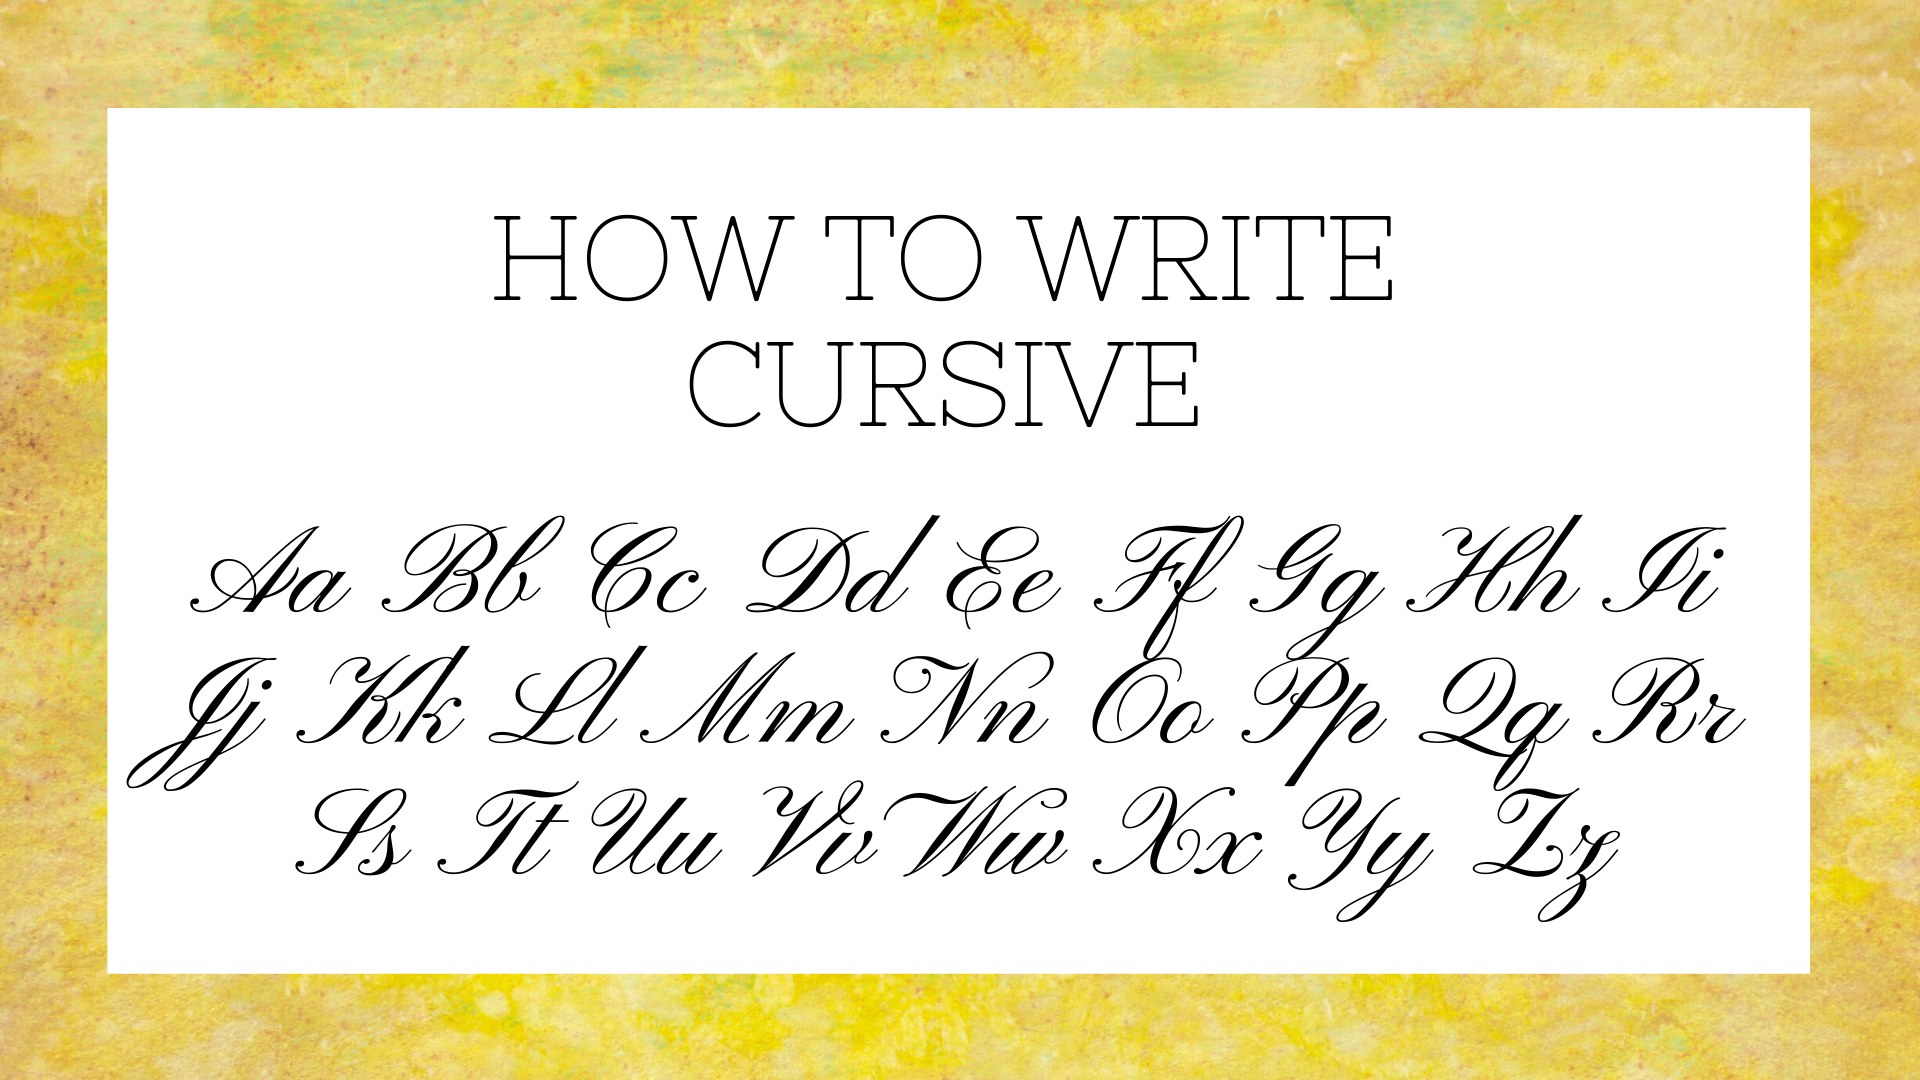 How To Write Cursive Letters | Science Trends